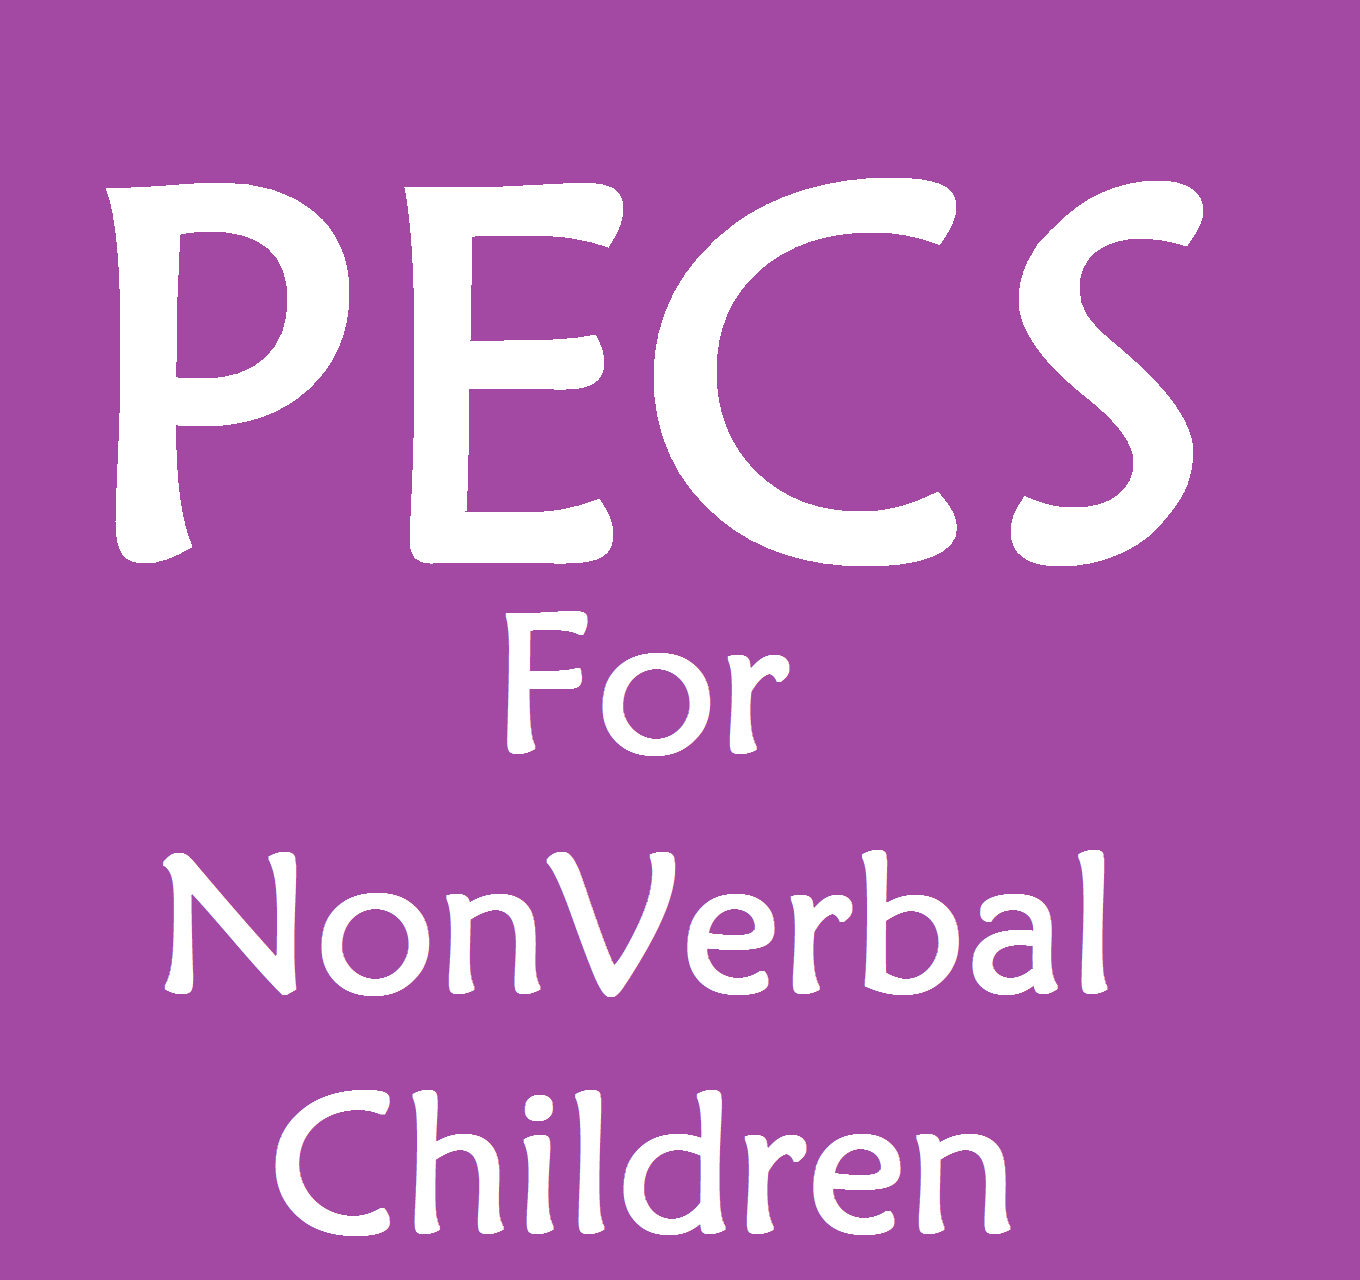 Where To Start In Therapy For Non Verbal Children Functional Communication